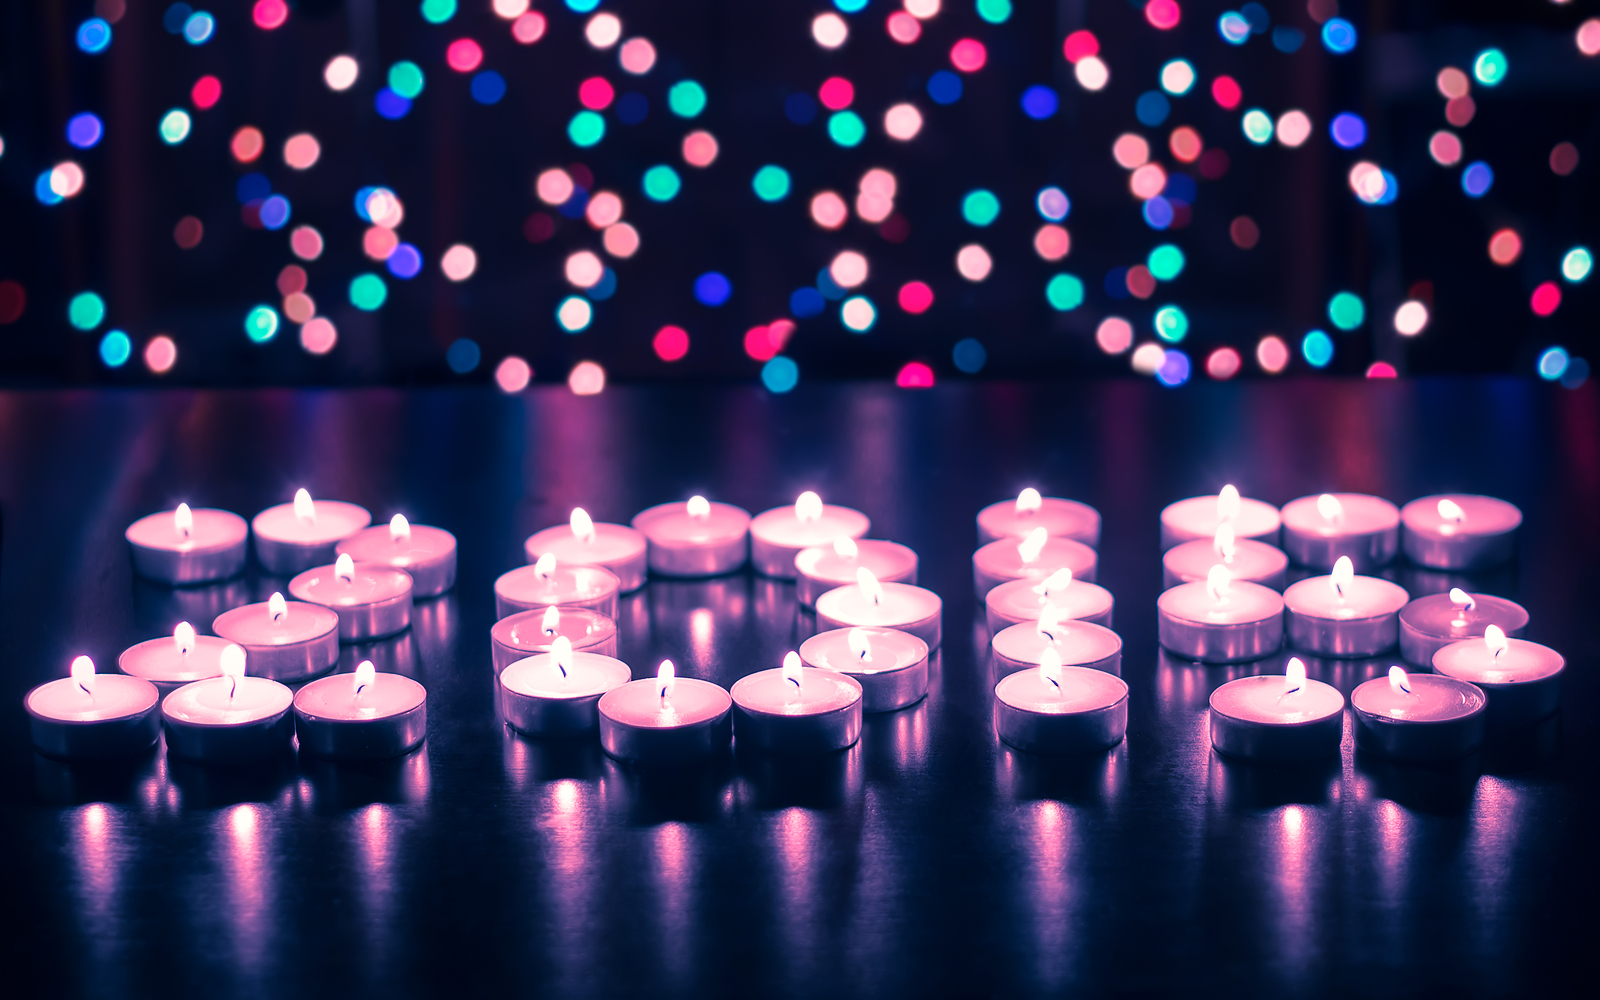 Happy New Year 2015 - festive candles